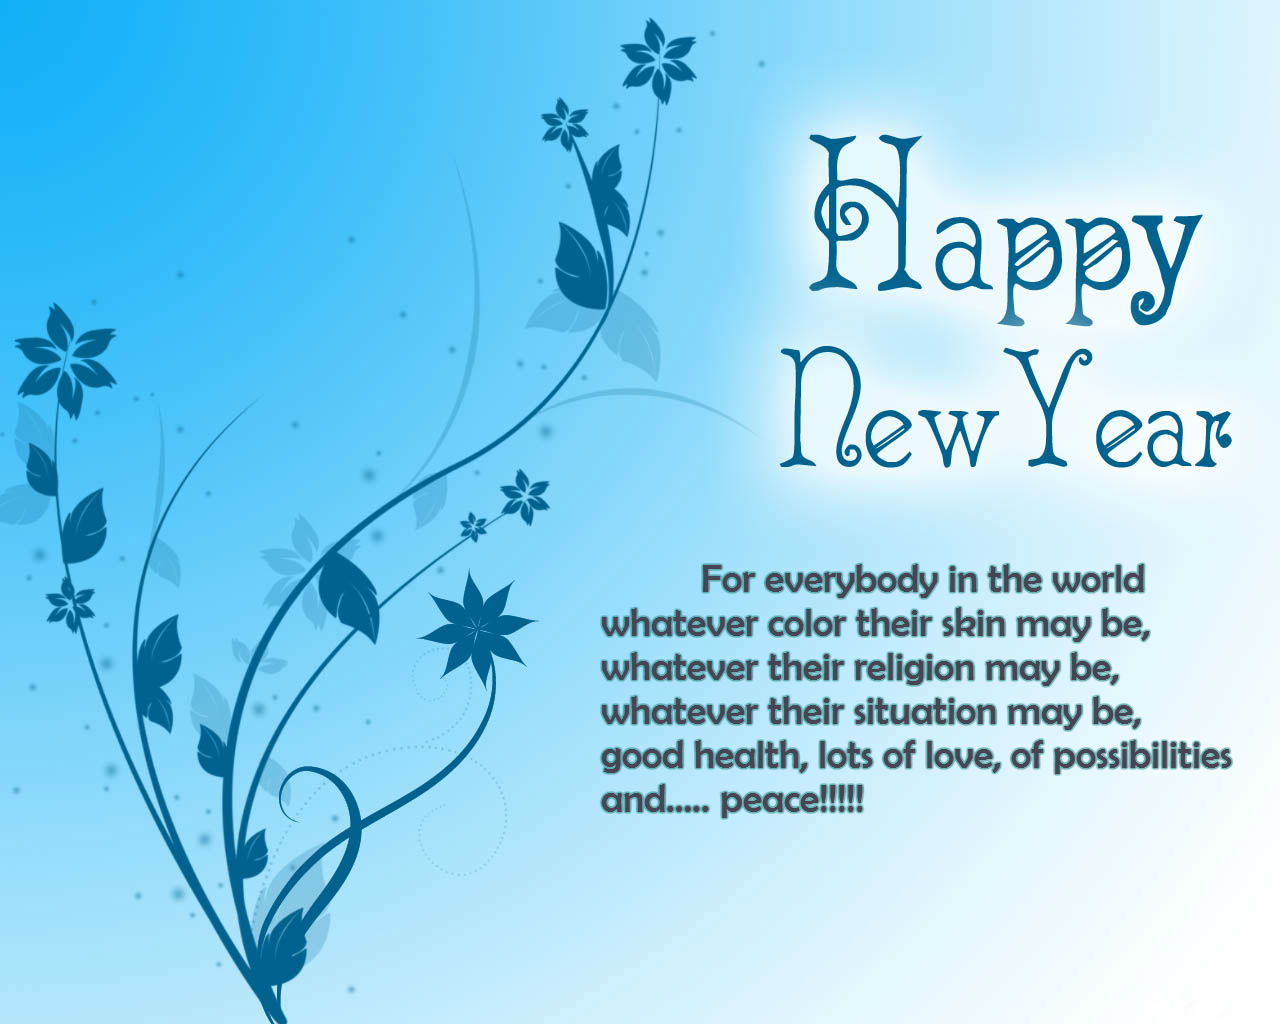 Sms with Wallpapers: Happy New Year 2014 greetings cards